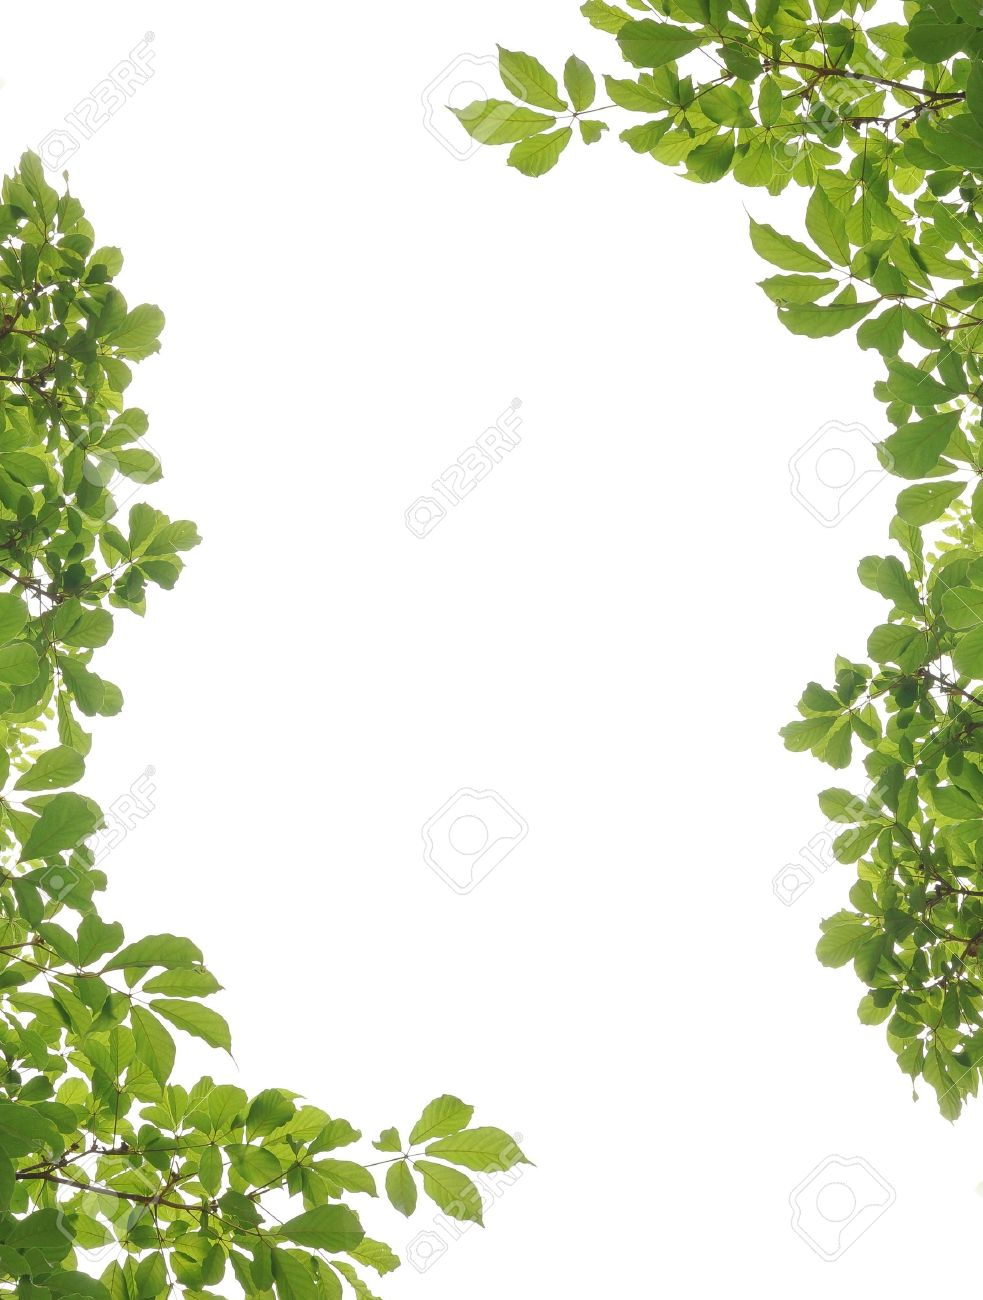 green leaf picture frame stock photo 13963882